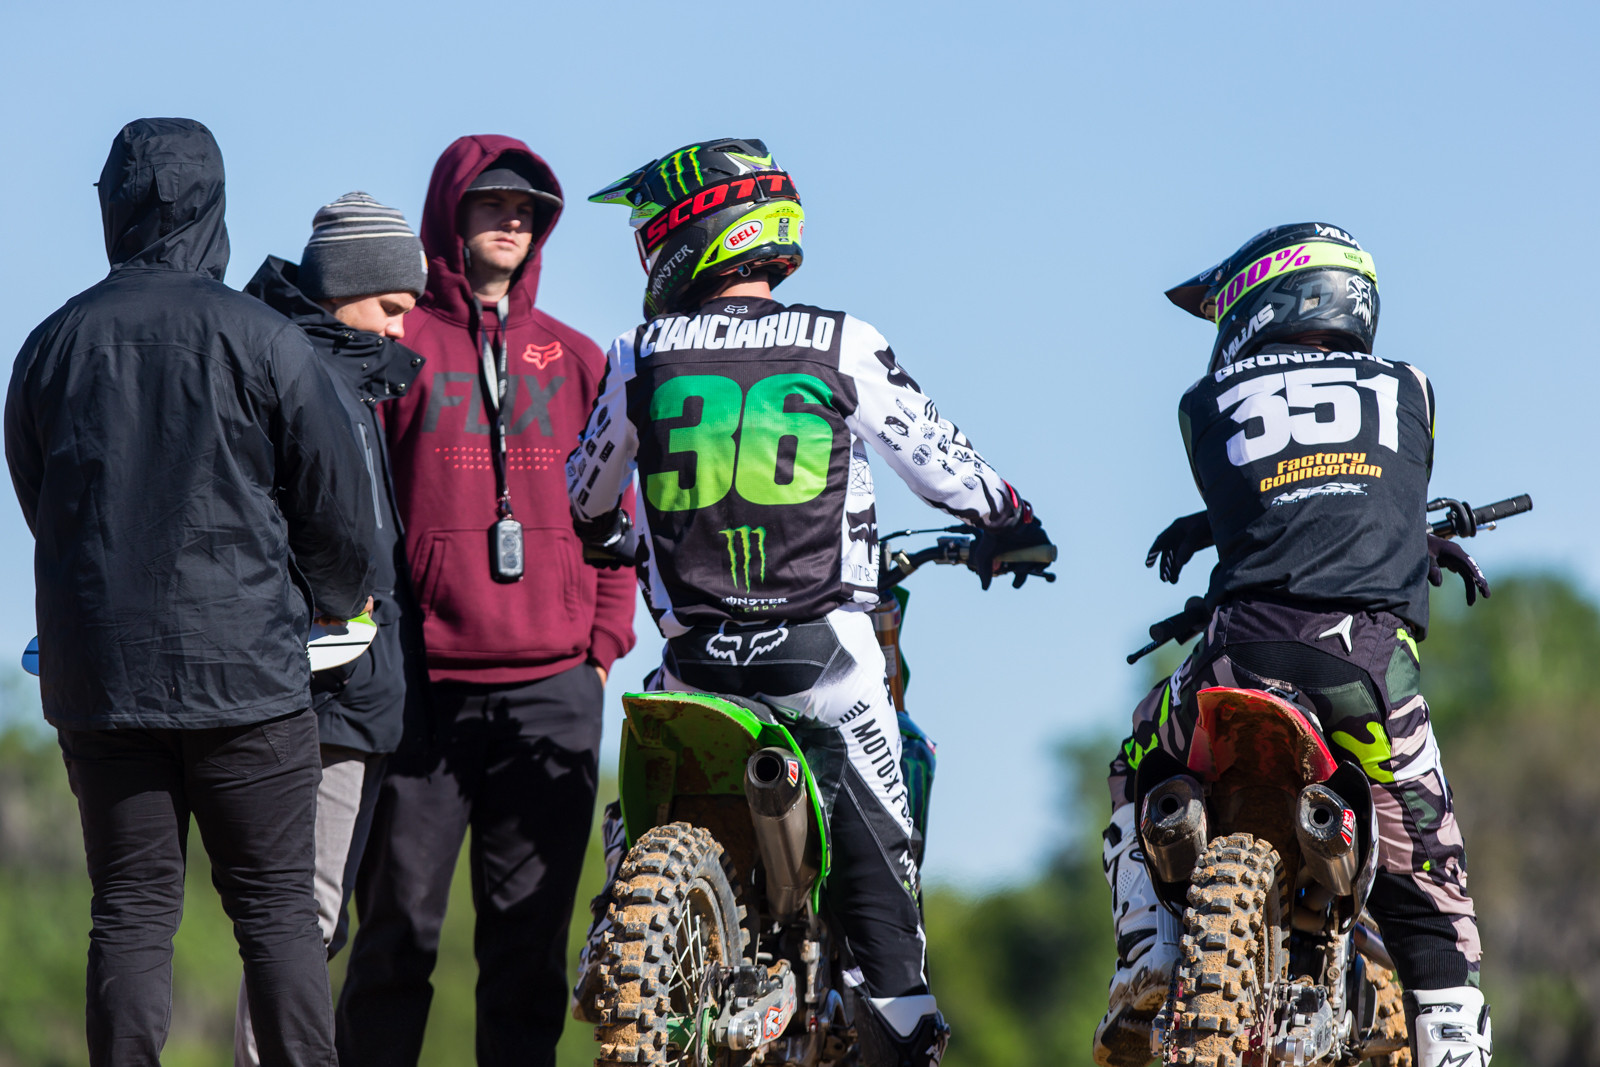 The Nest Crew - Photo Gallery: The Nest, Goat Farm, and MTF - Motocross Pictures - Vital MX